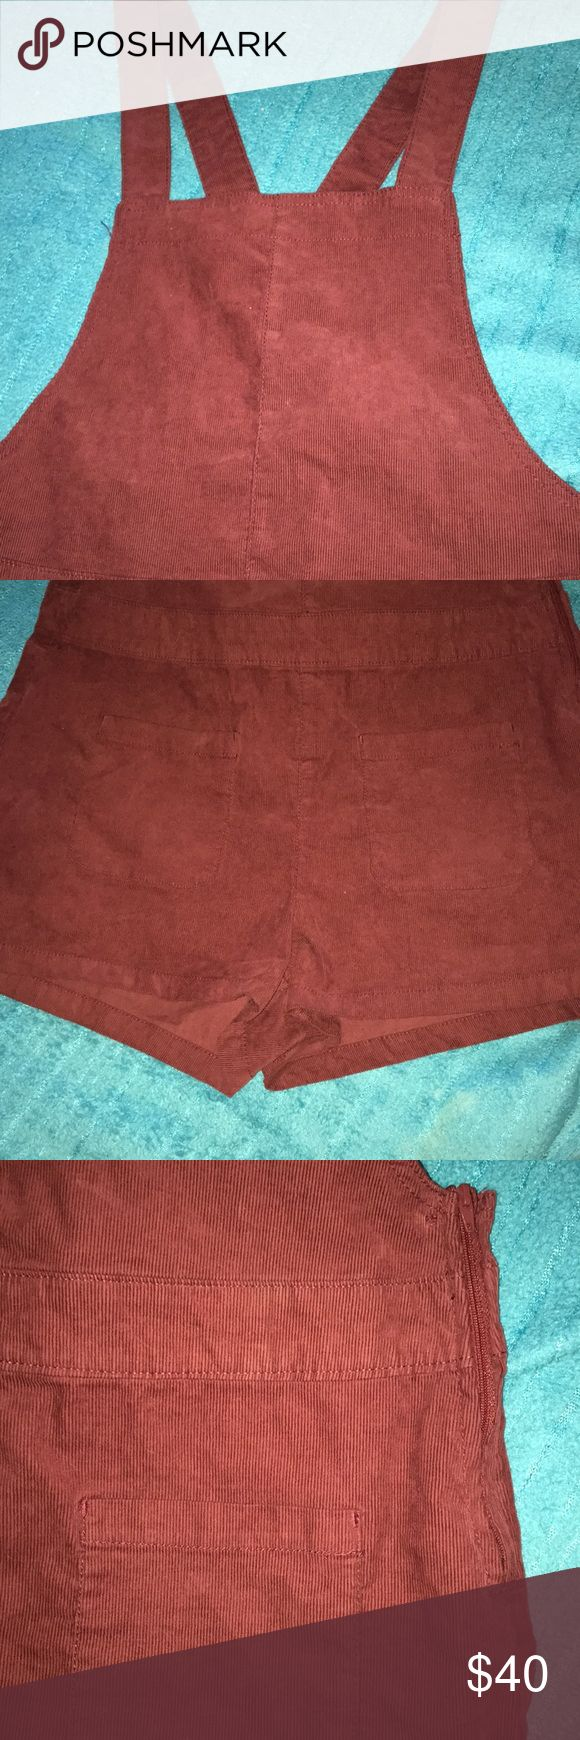 Dark maroon shorts overalls from H&M Overall shorts very cute and stylish! Has two front pockets and also adjustable straps in the back as shown in picture and also a zipper along the side. Color looks a bit lighter in pics but is like a darker maroon color. Still has tags, never worn! Size 12 (: H&M Other